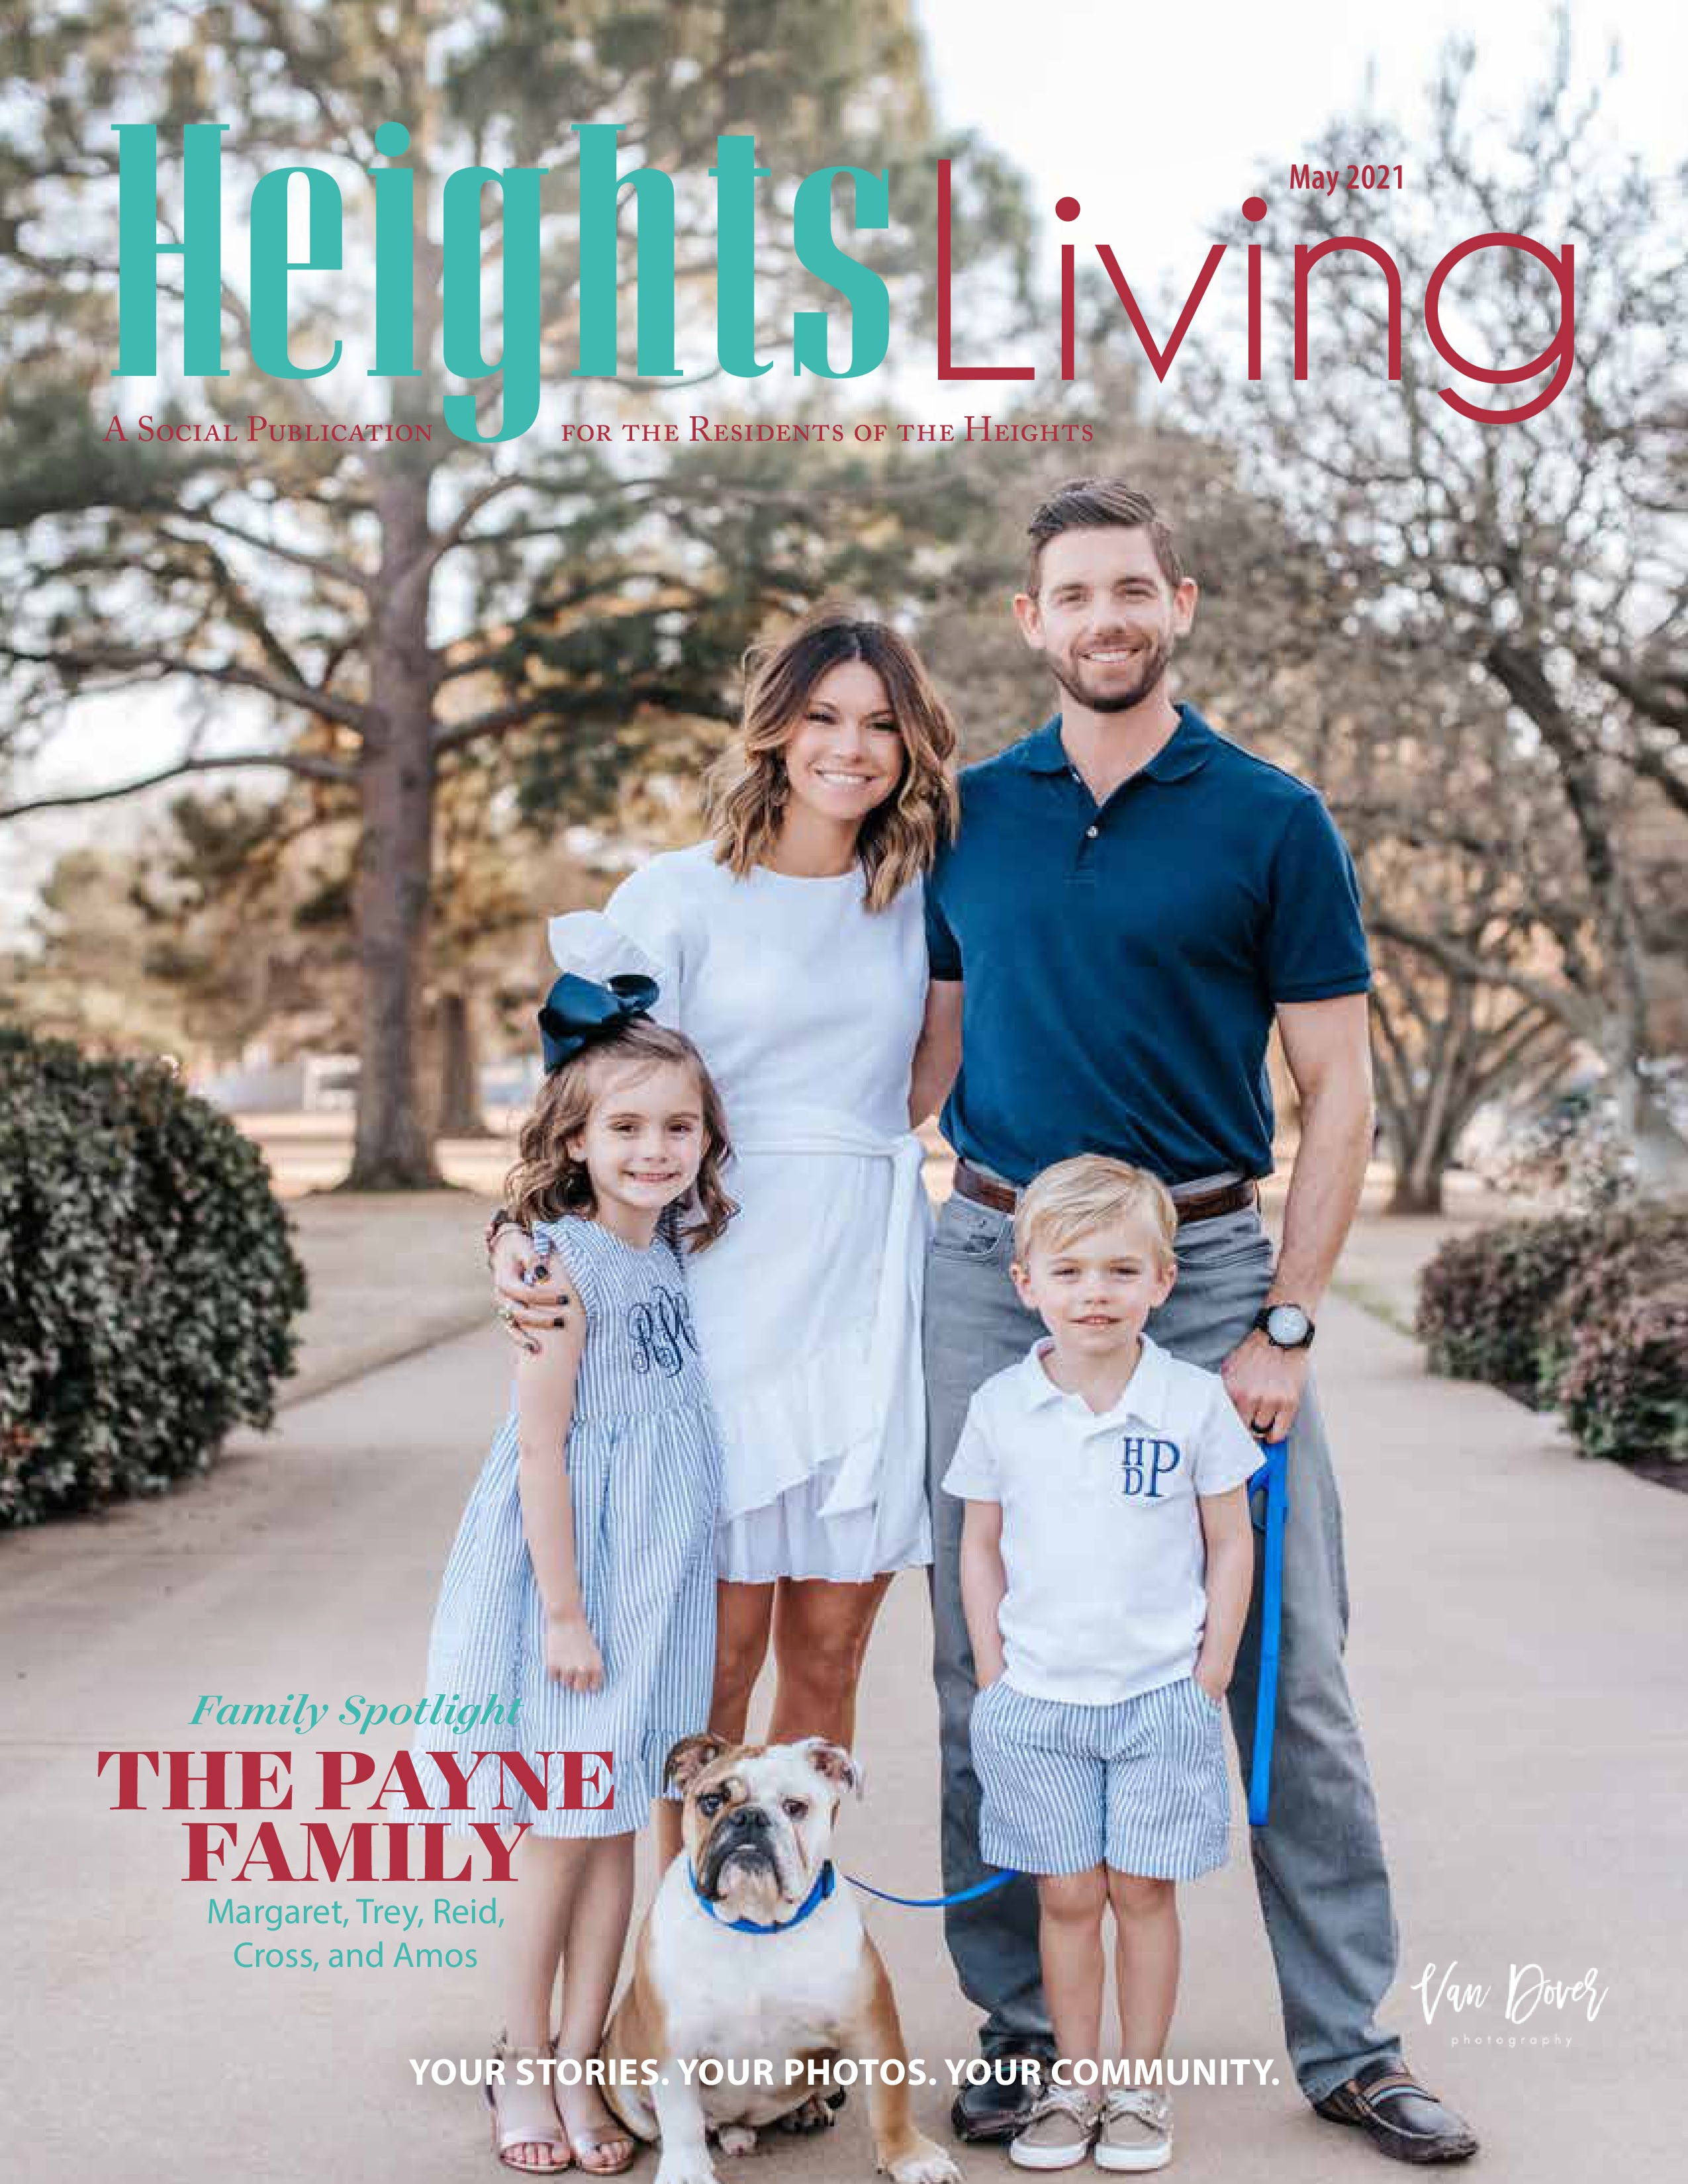 Heights Living 2021-05-01